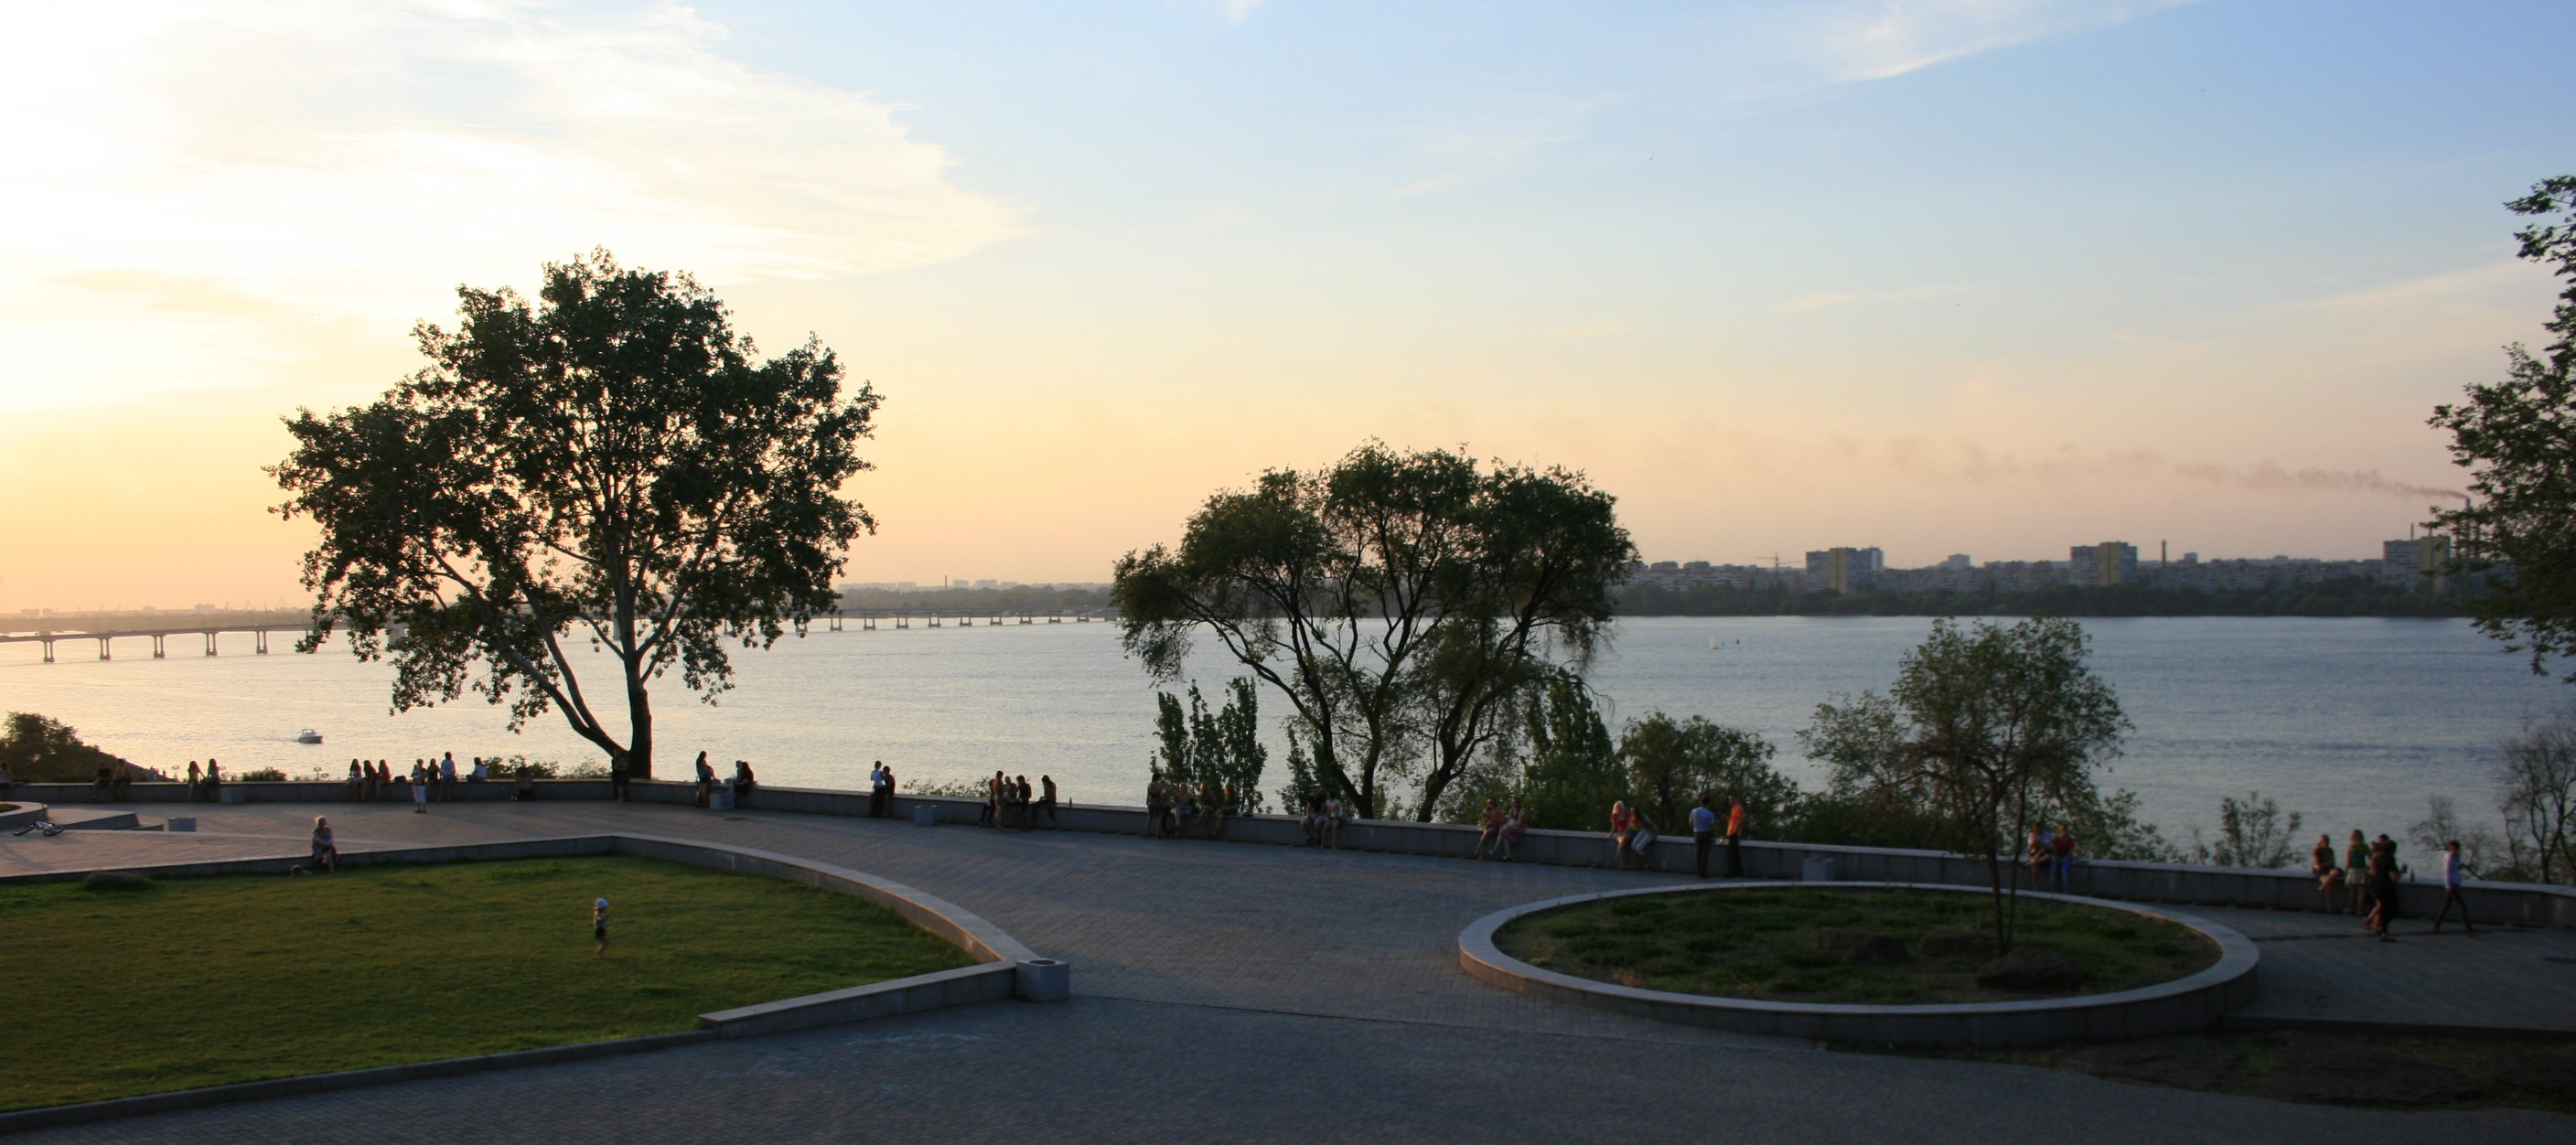 Europe's longest embankment - Dnipropetrovsk